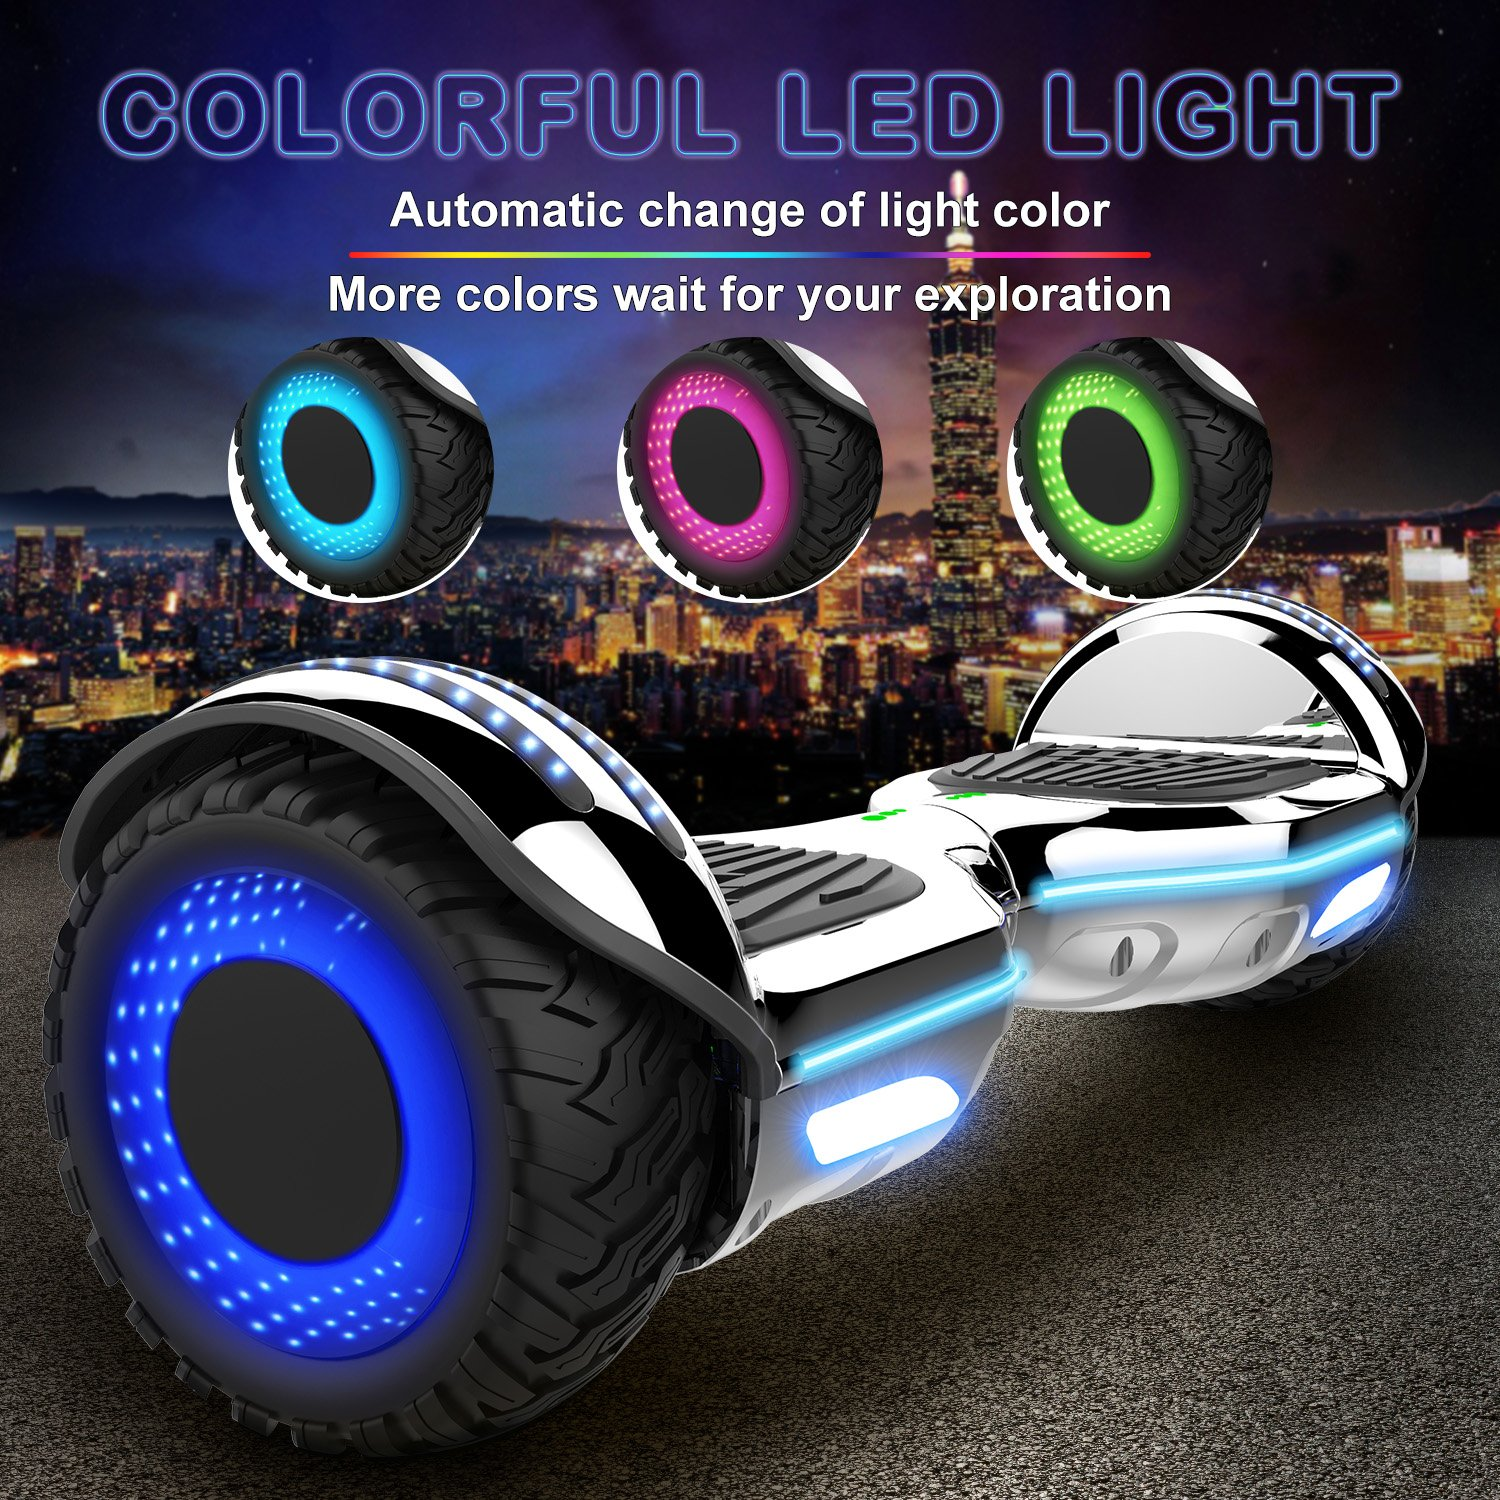 Double Hunter Self Balance Hoverboard 6.5 E-Star, Auto Balance Patinete Eléctrico, Ruedas LED Luces, Altavoz Bluetooth, Motor 700W, Modelo ES09